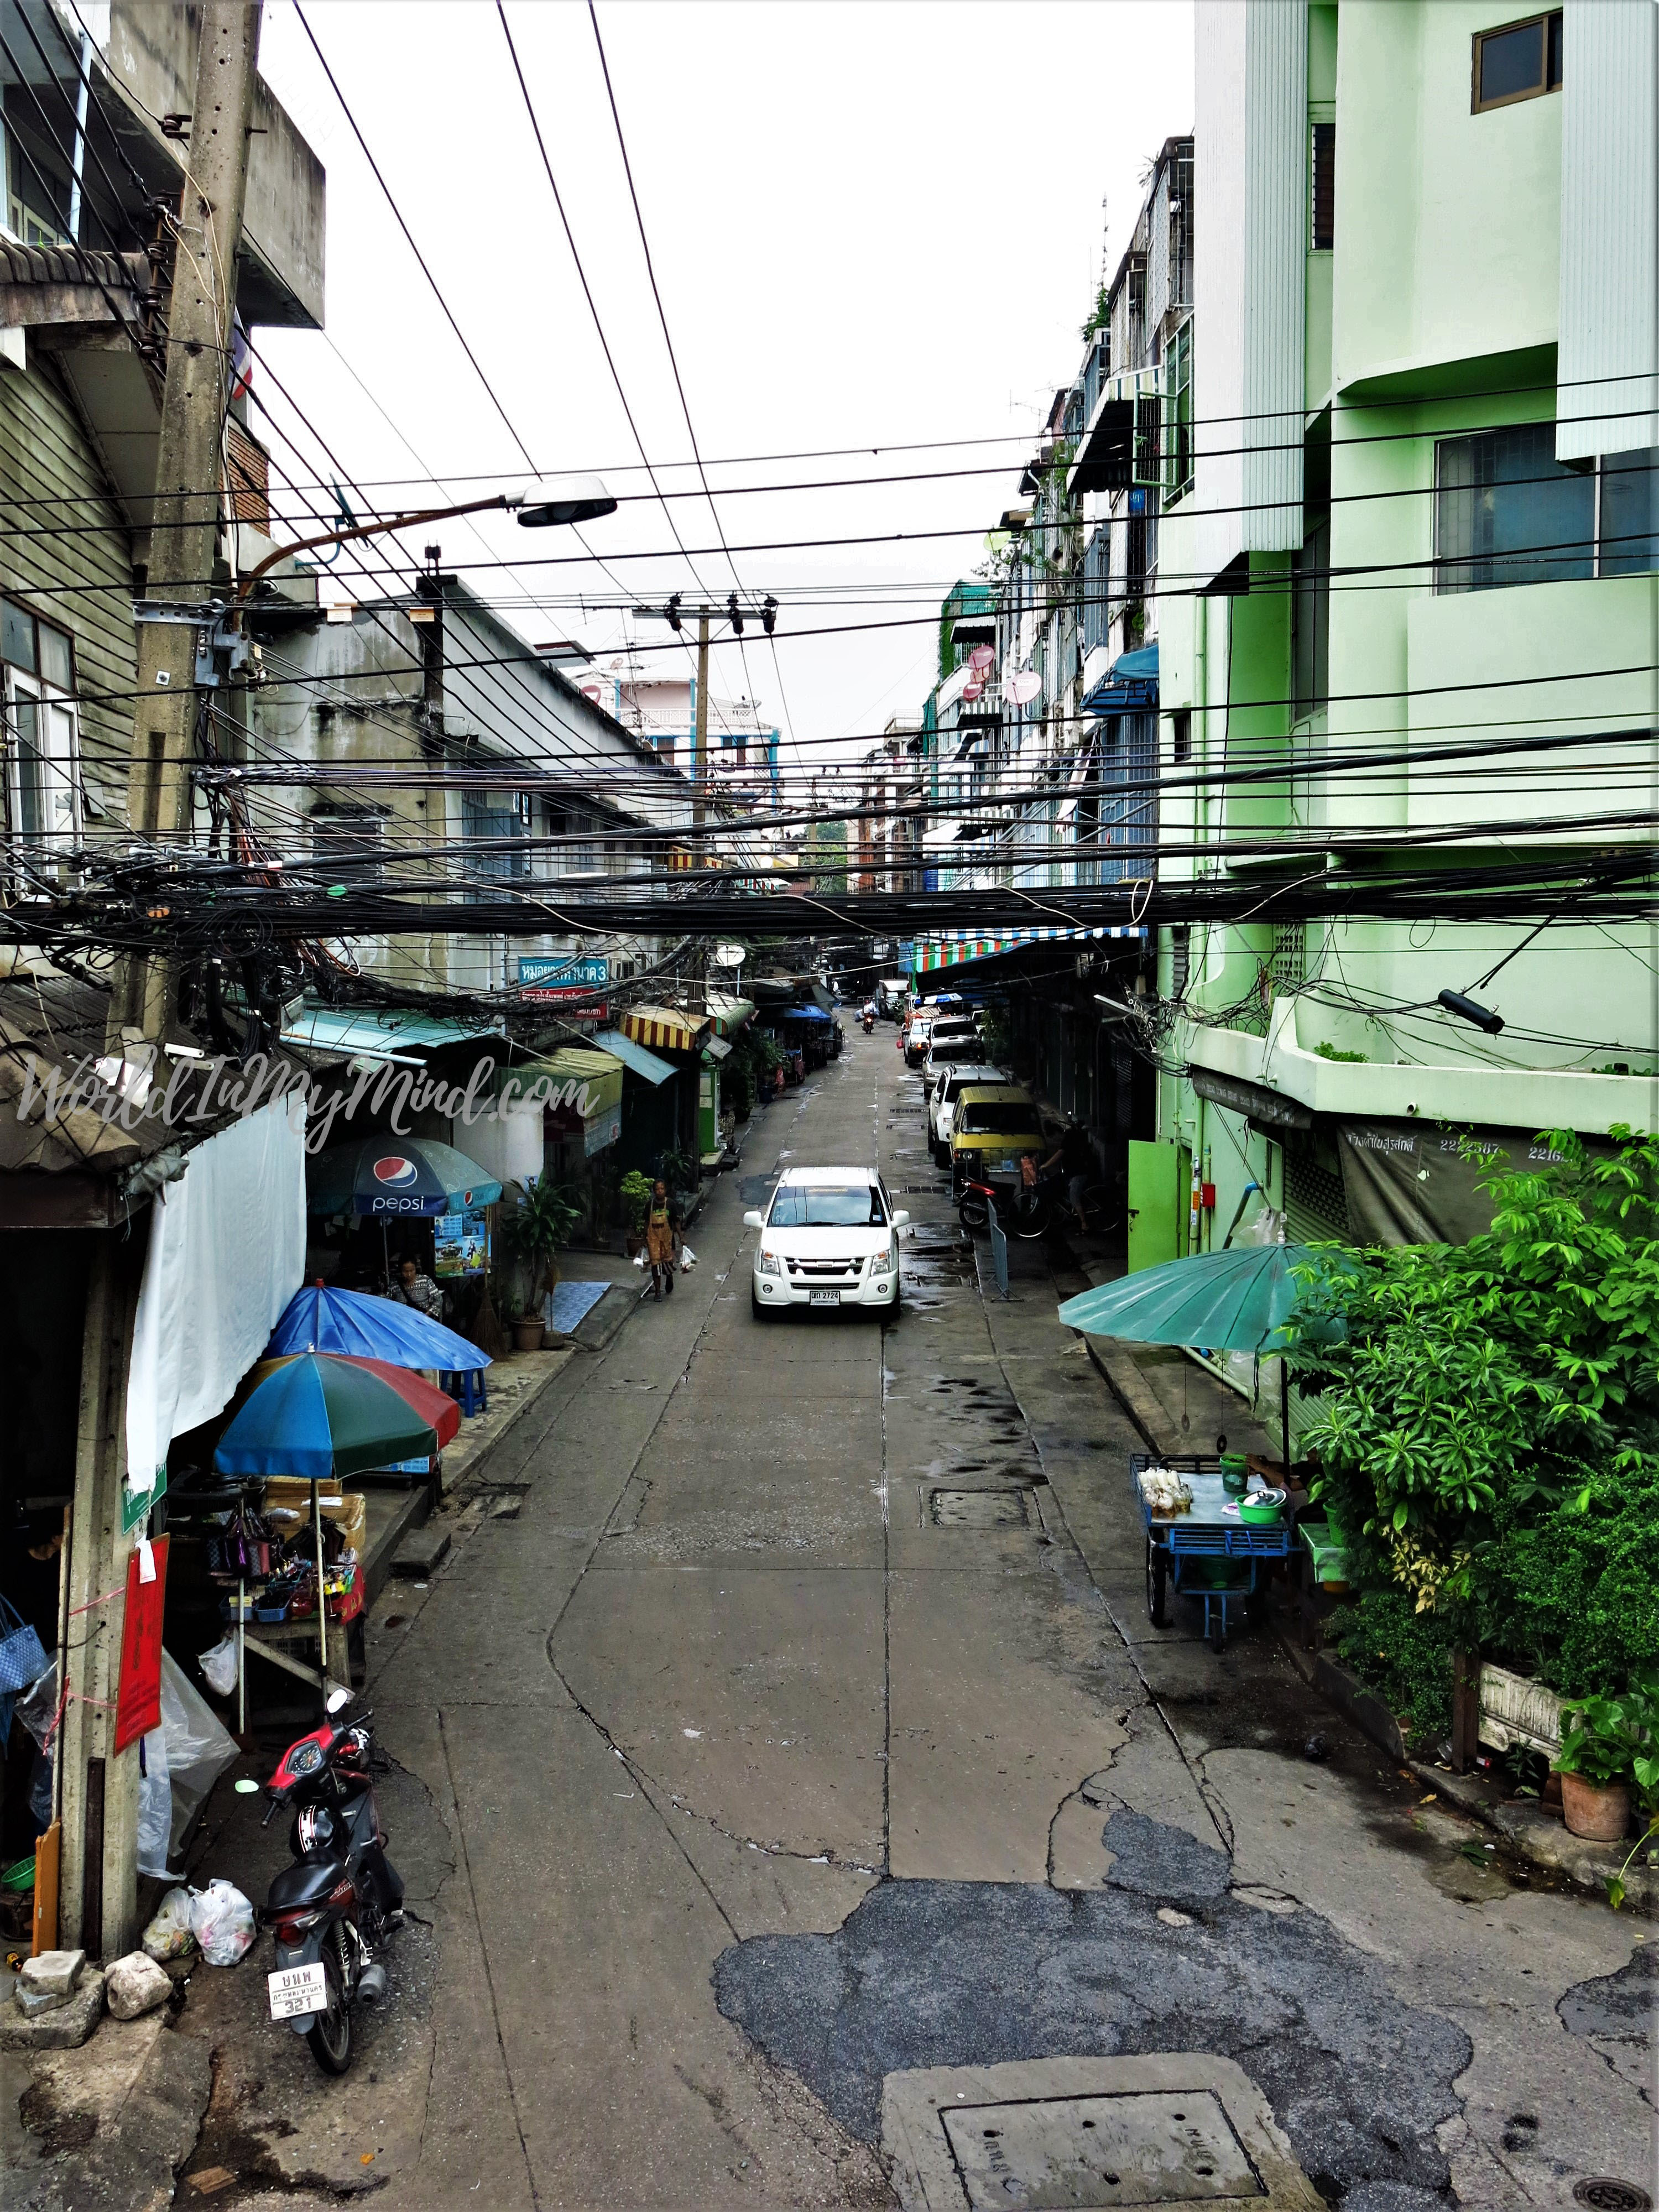 Urban photography: a street in Bangkok